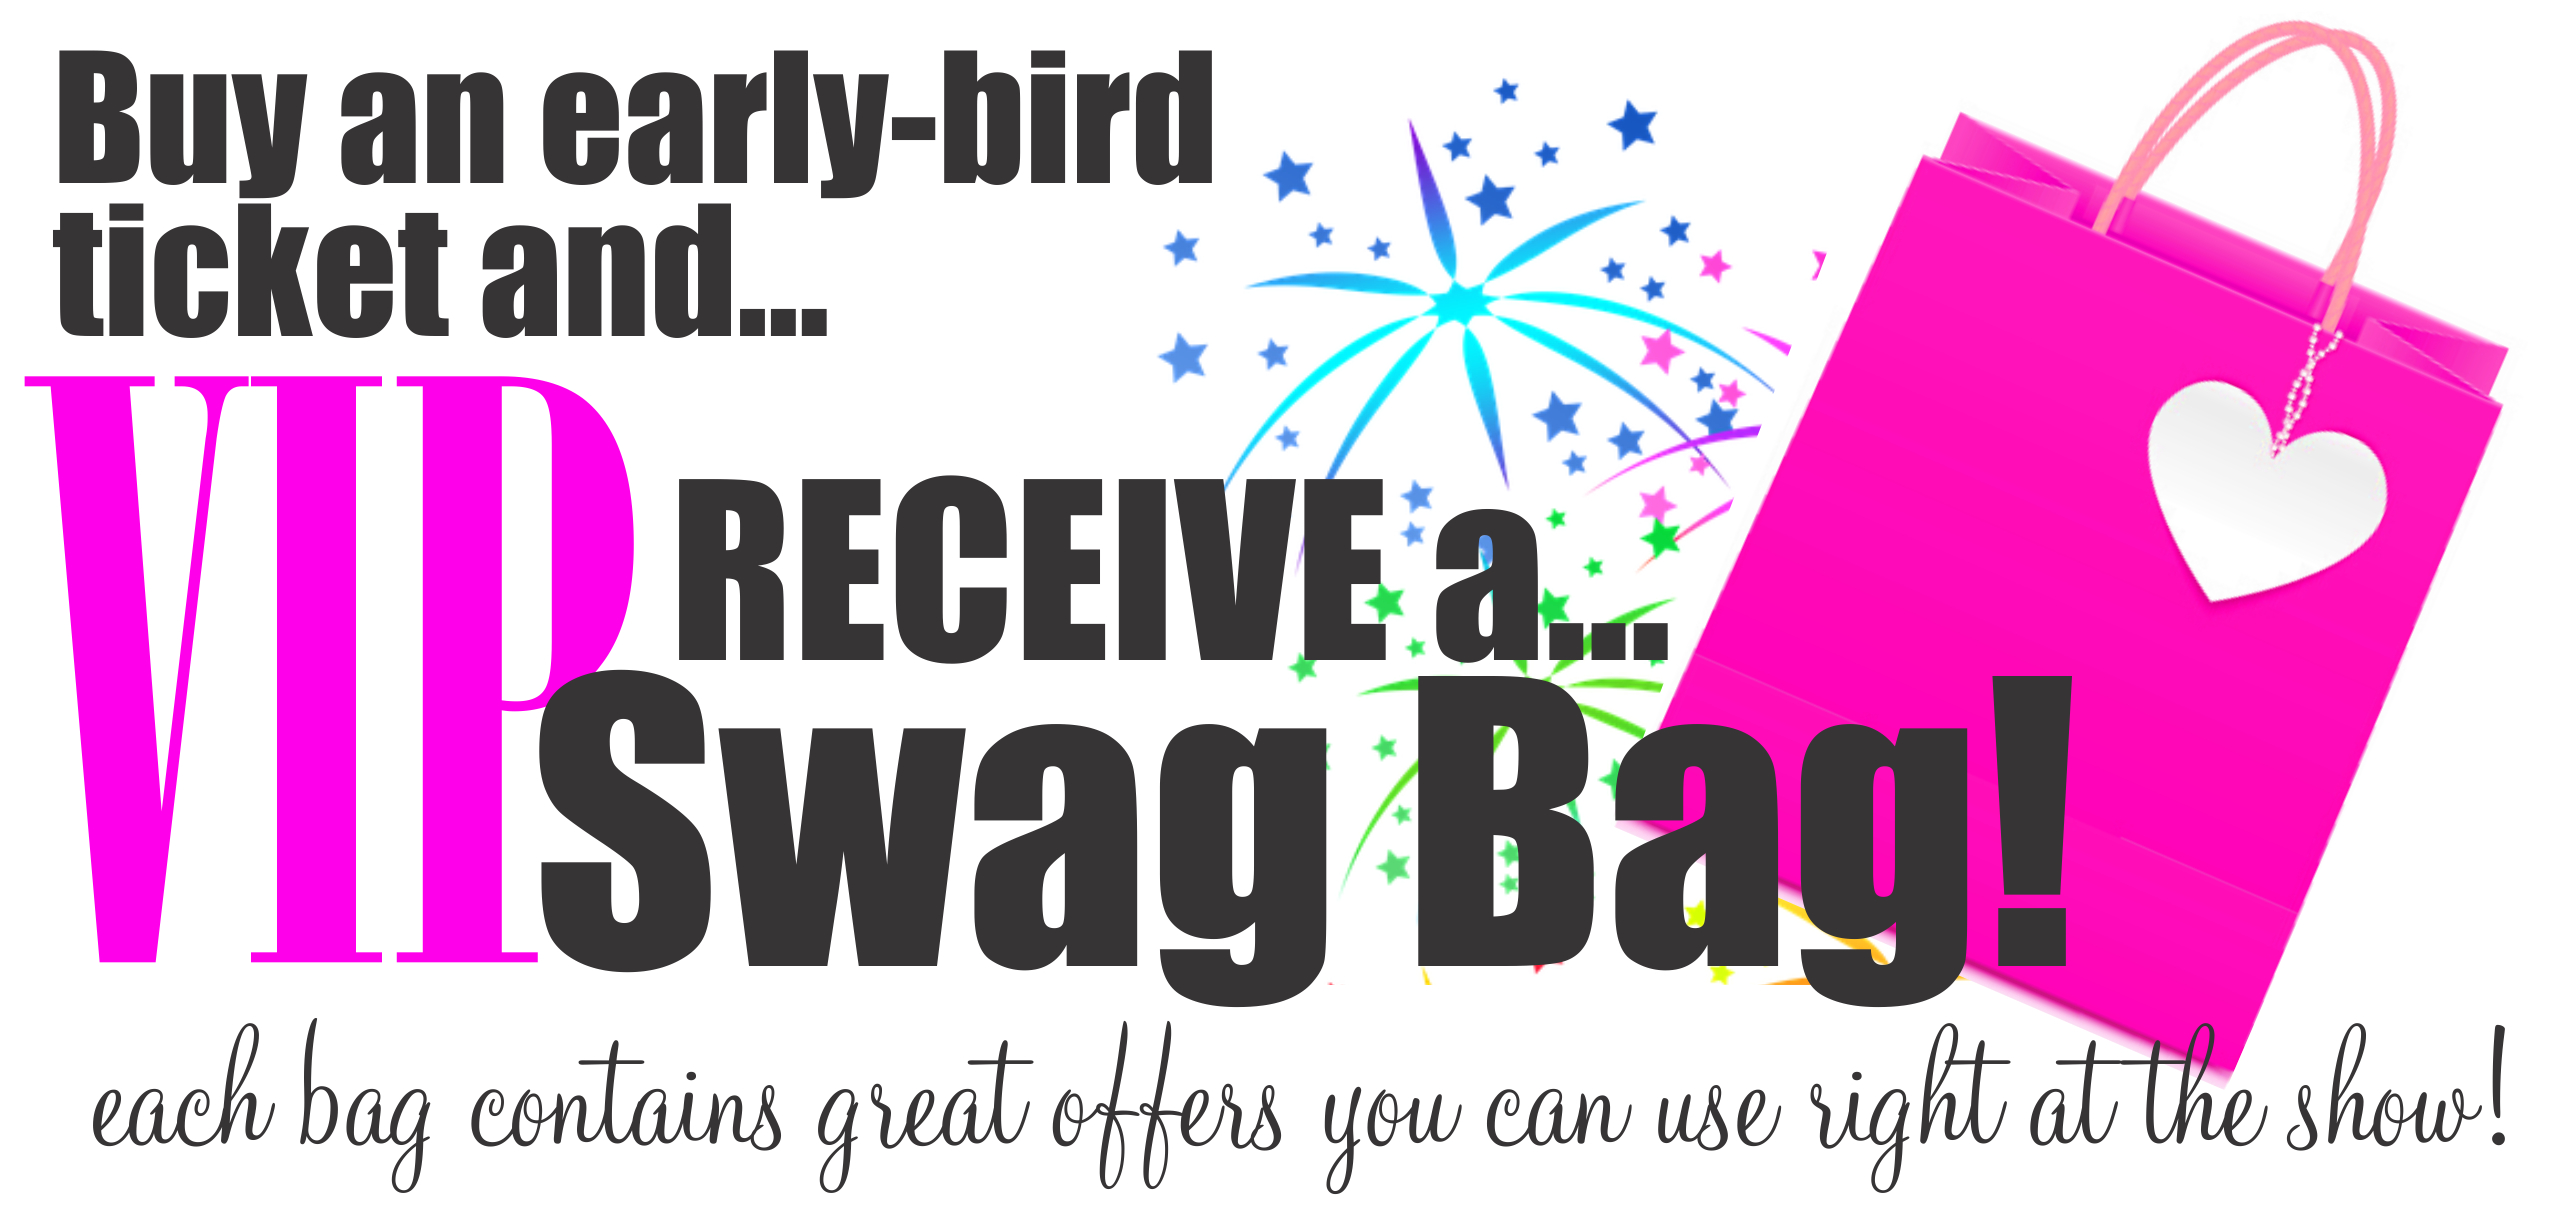 Buy your ticket now and receive awesome swag!